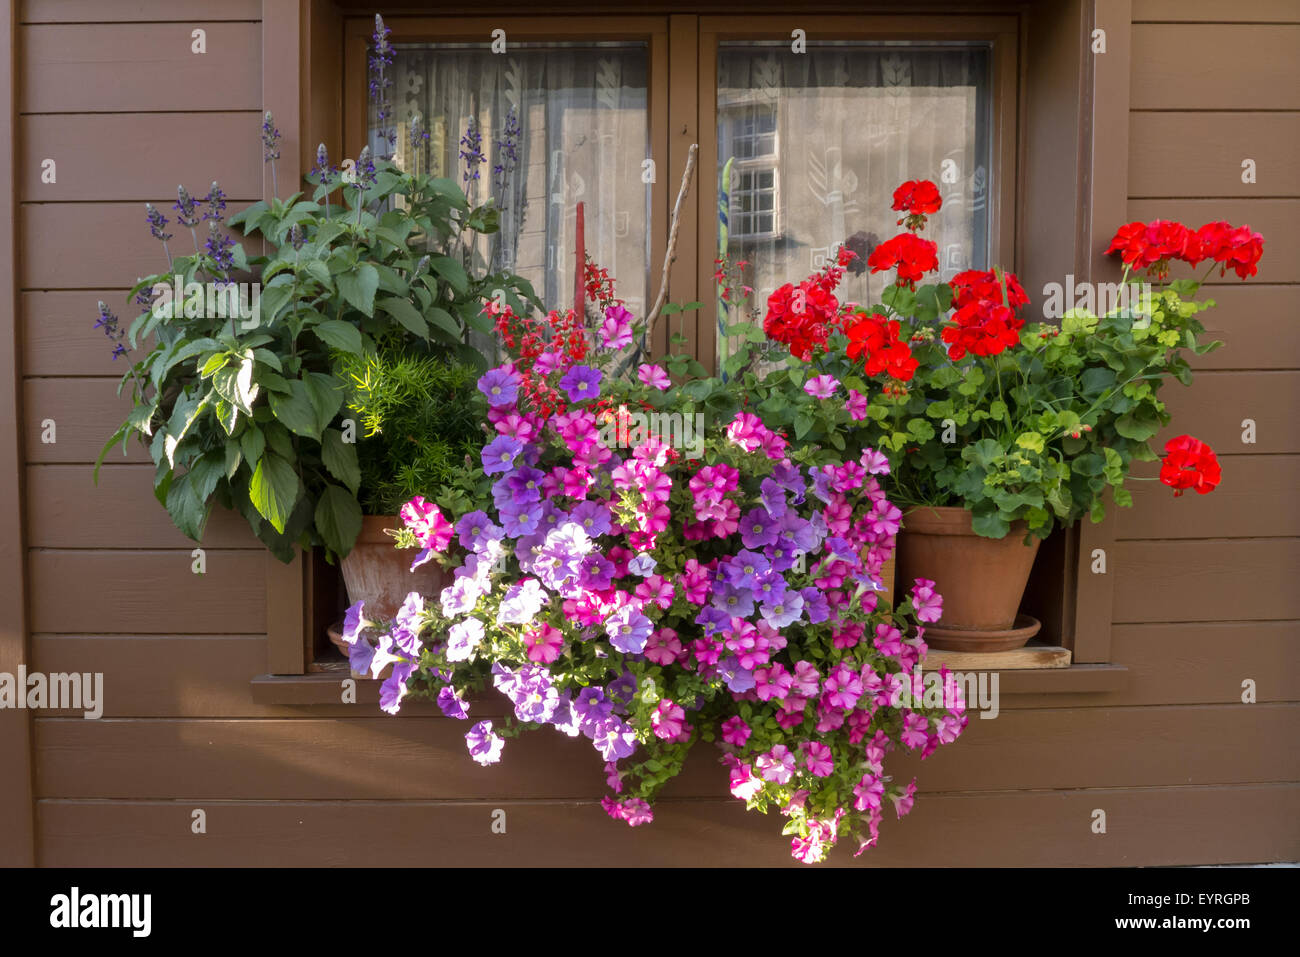 Switzerland. Typical colourful flowers in window box. - Stock Image